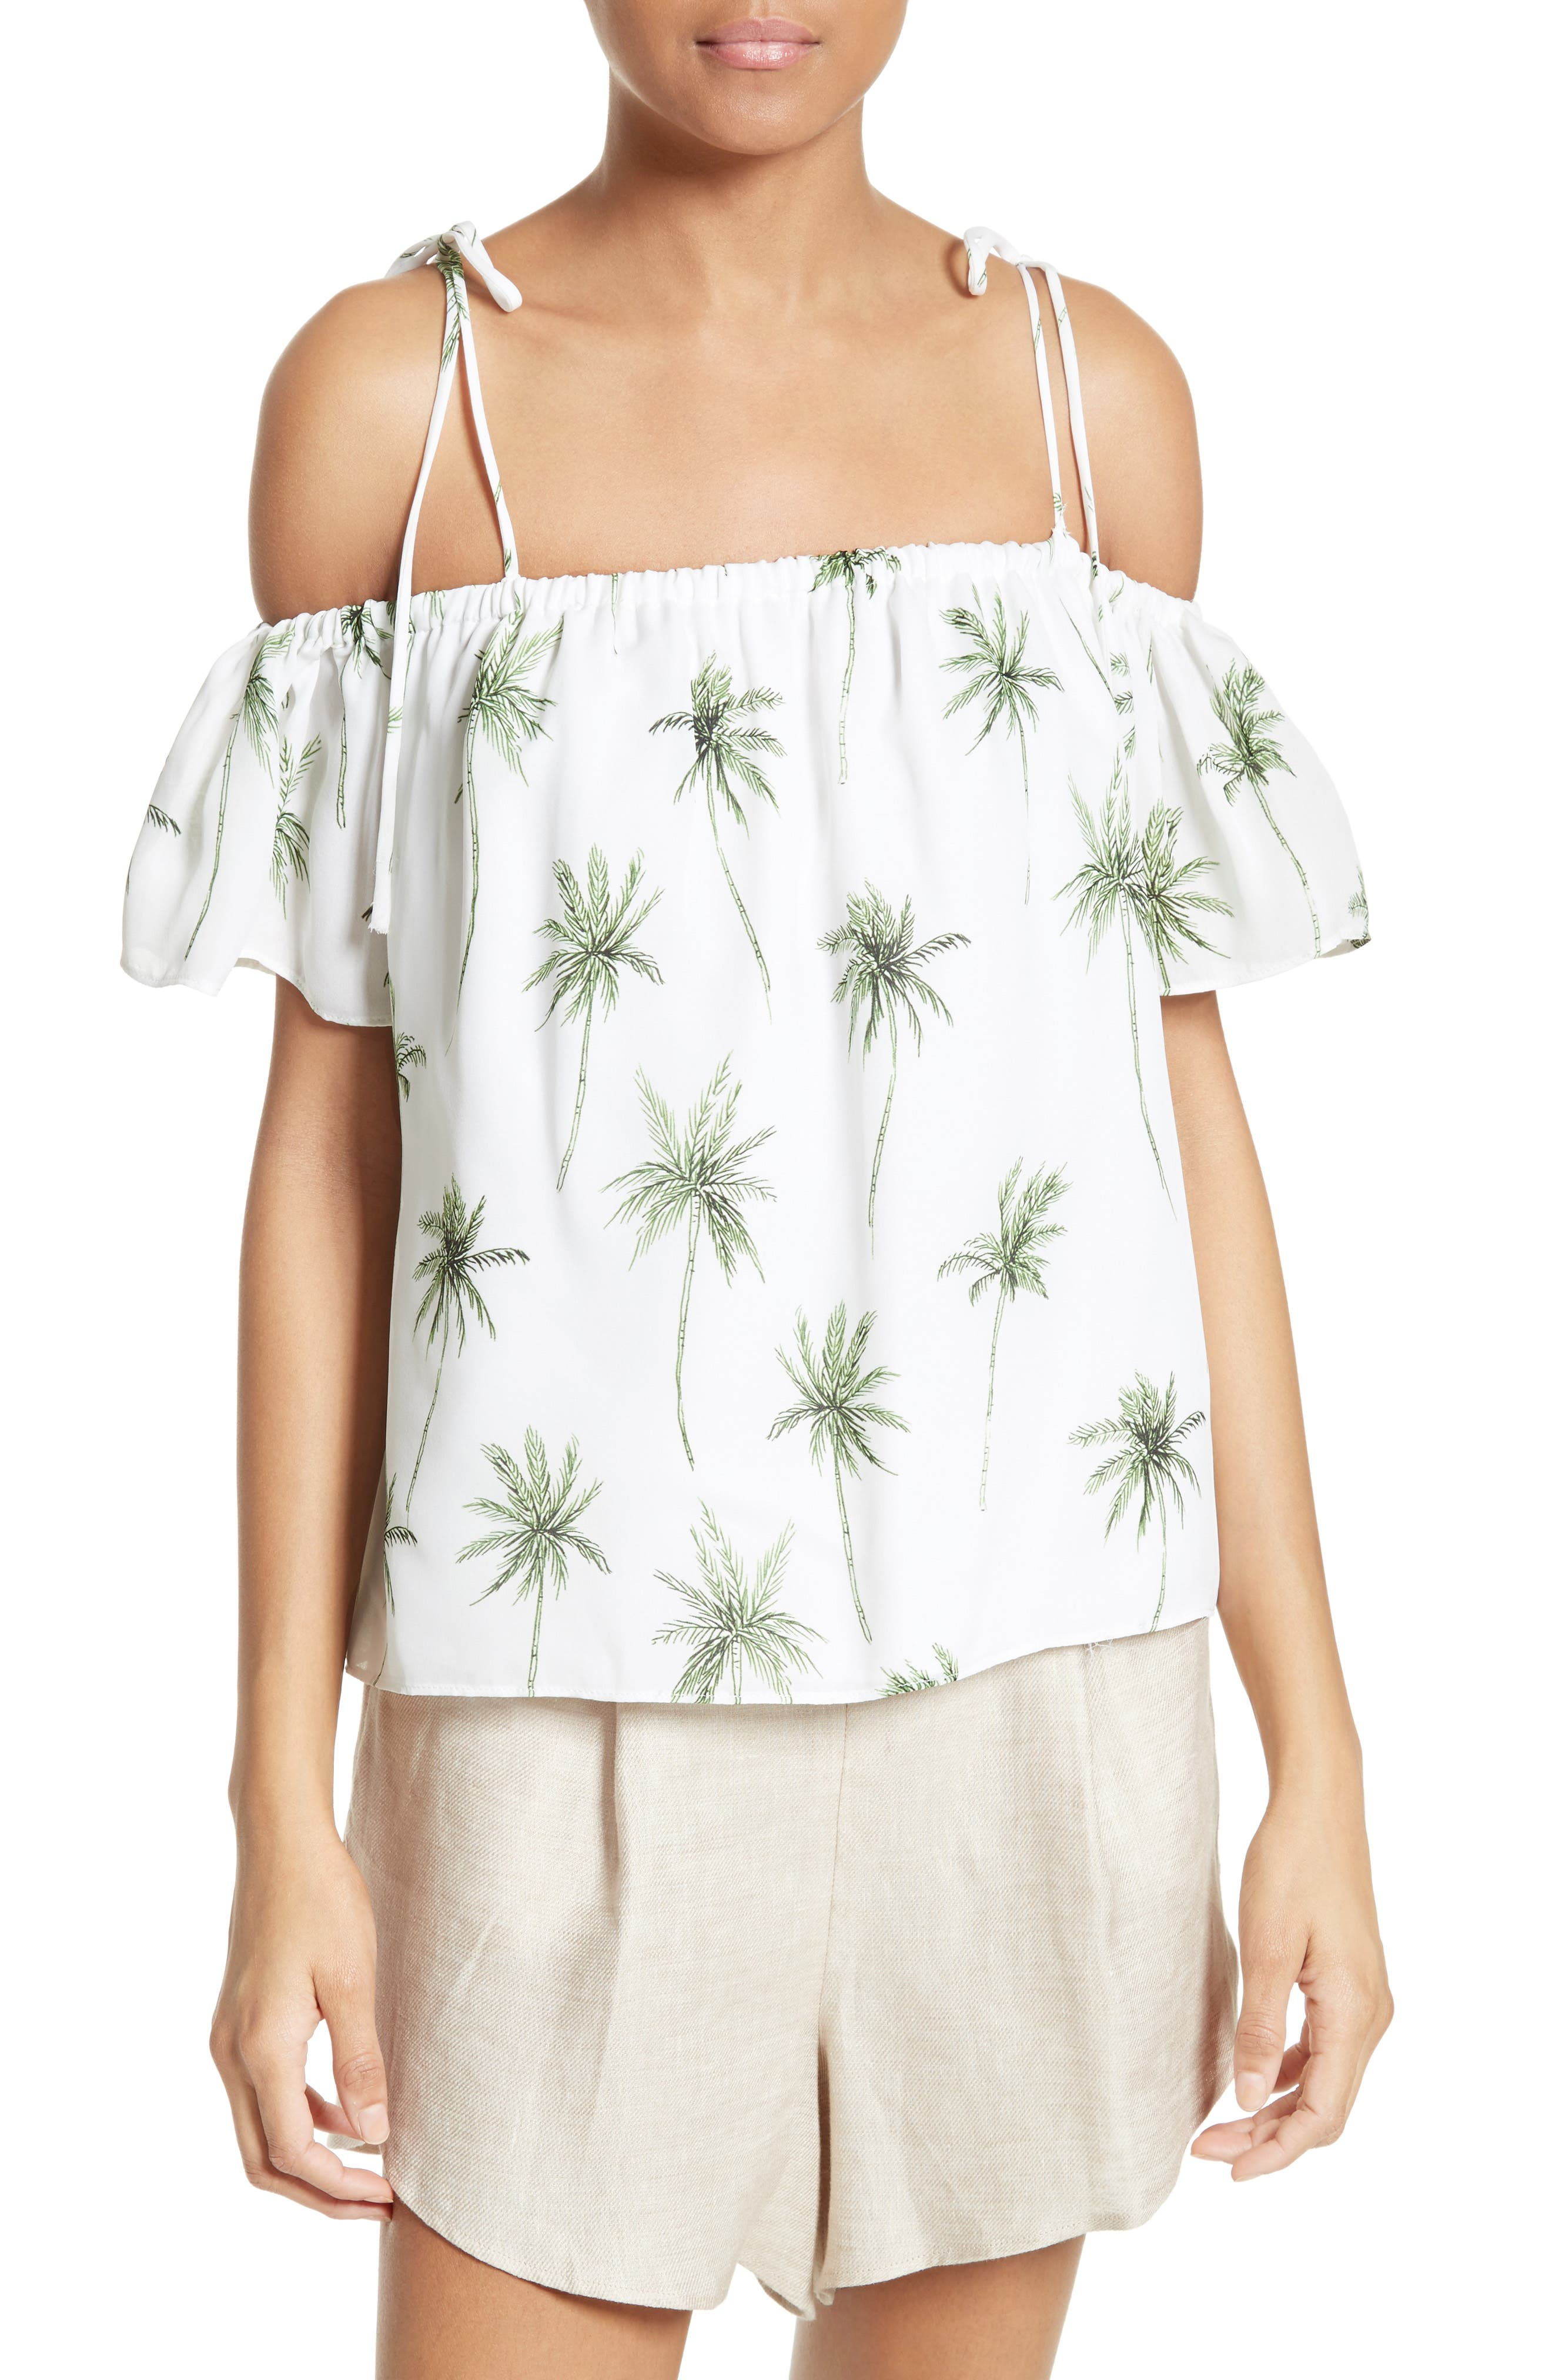 Main Image - Milly Eden Palm Tree Print Top